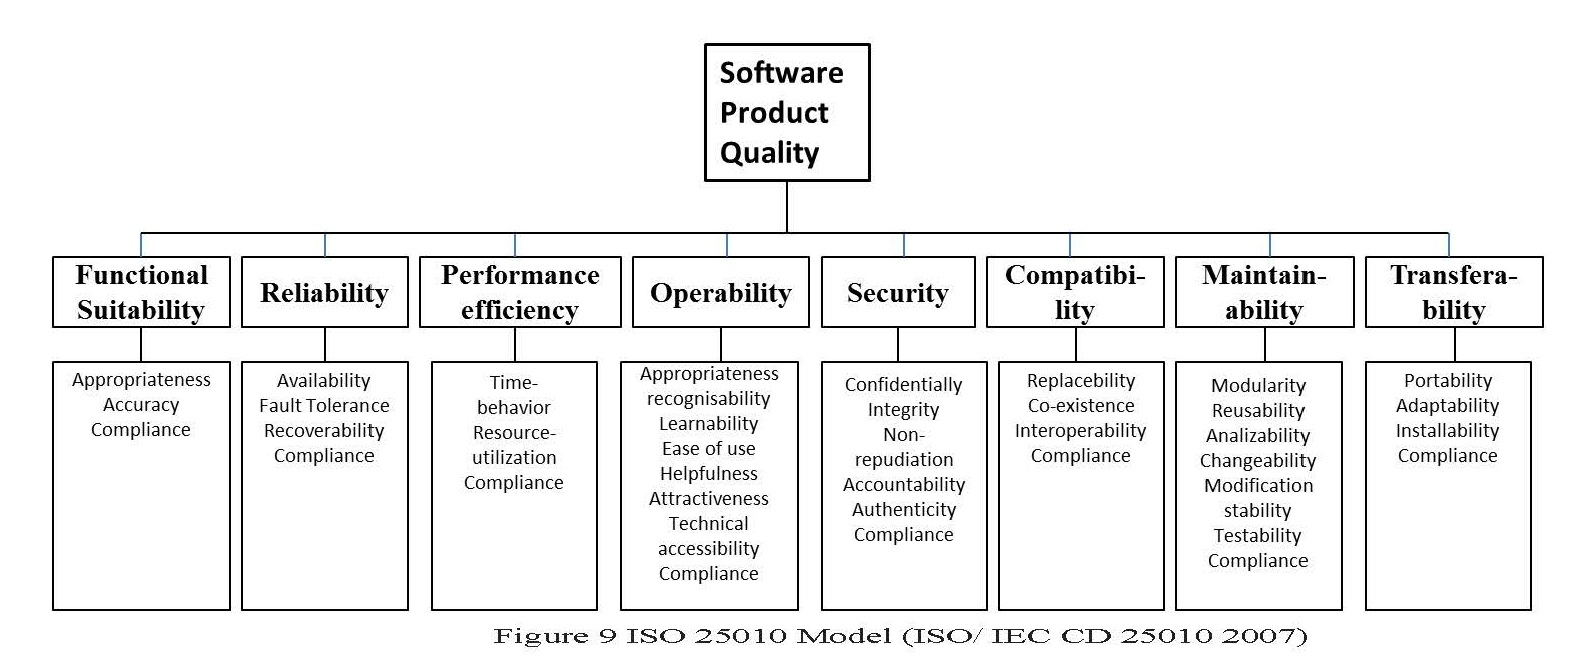 Iso 25010